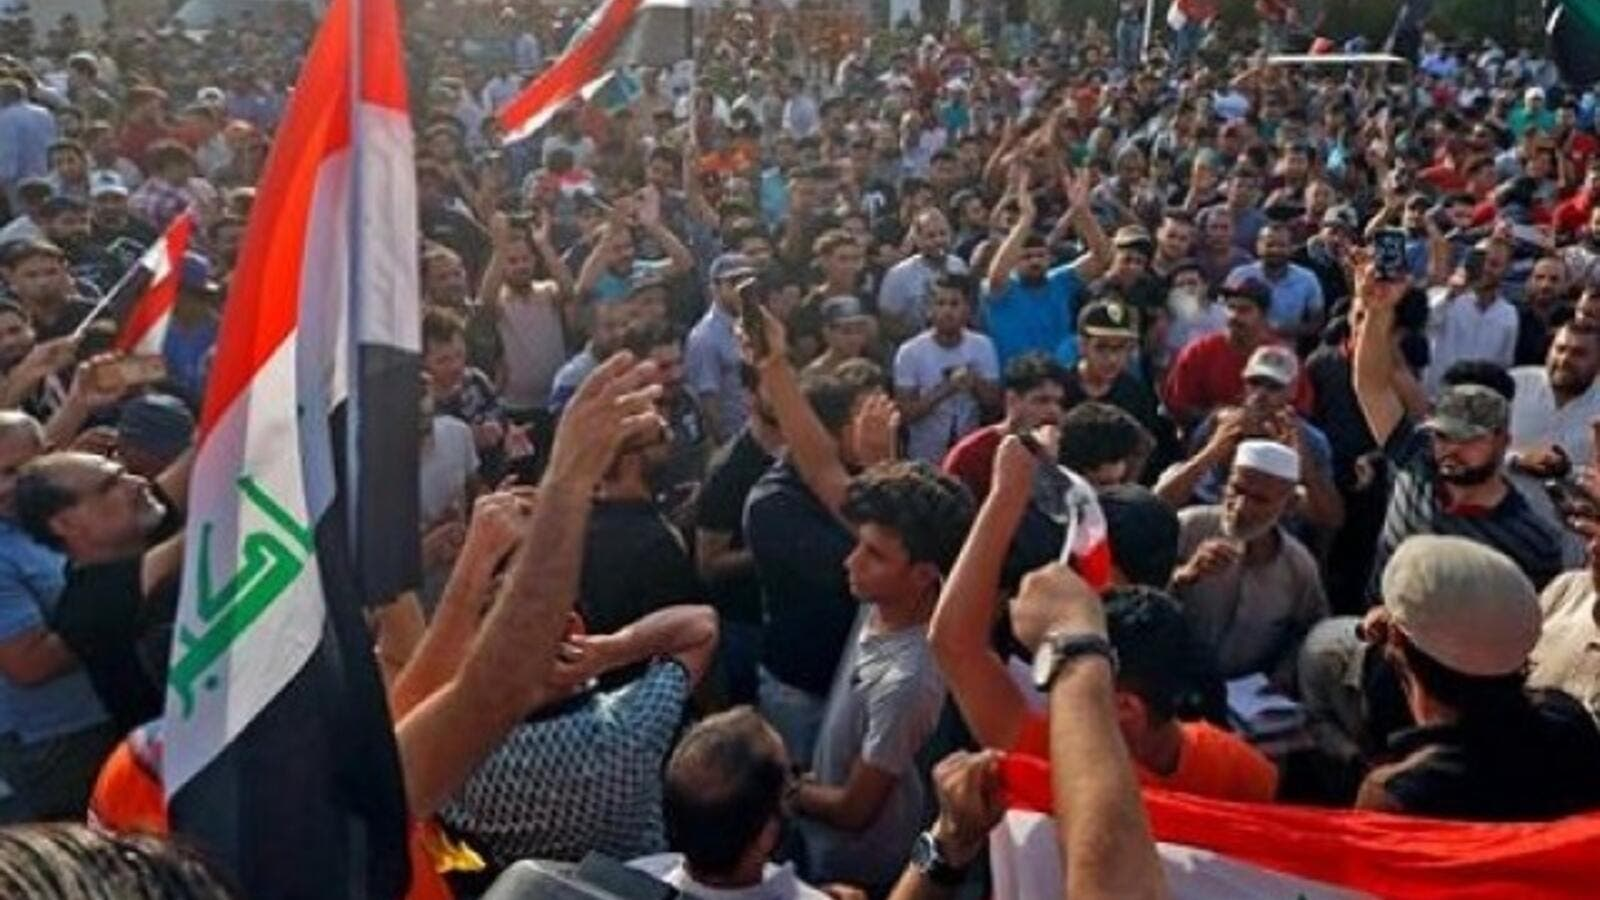 Iraqi Protesters demonstrate against unemployment. (AFP/File)